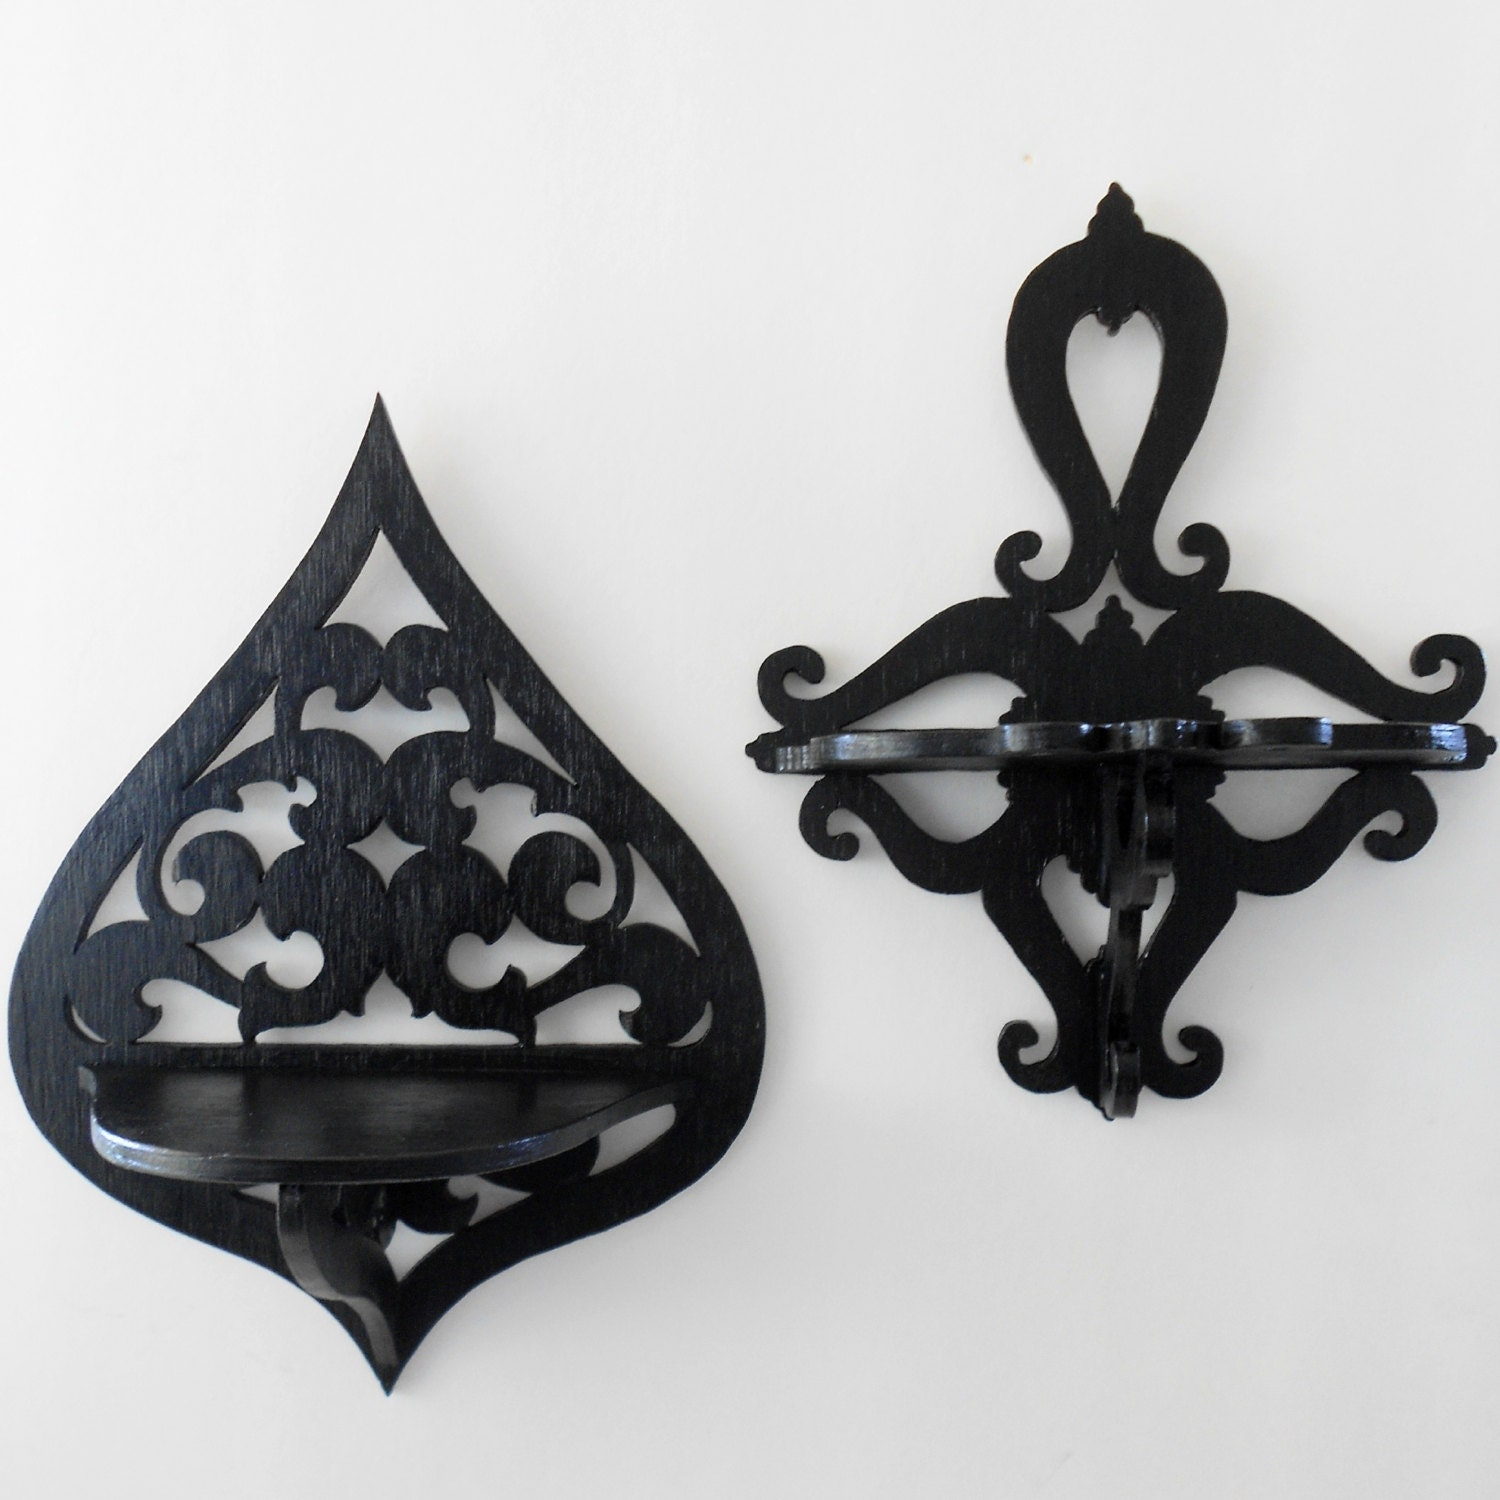 Gothic Wall Sconces: Gothic Home Decor Wall Shelf Sconce Decorative Shelf